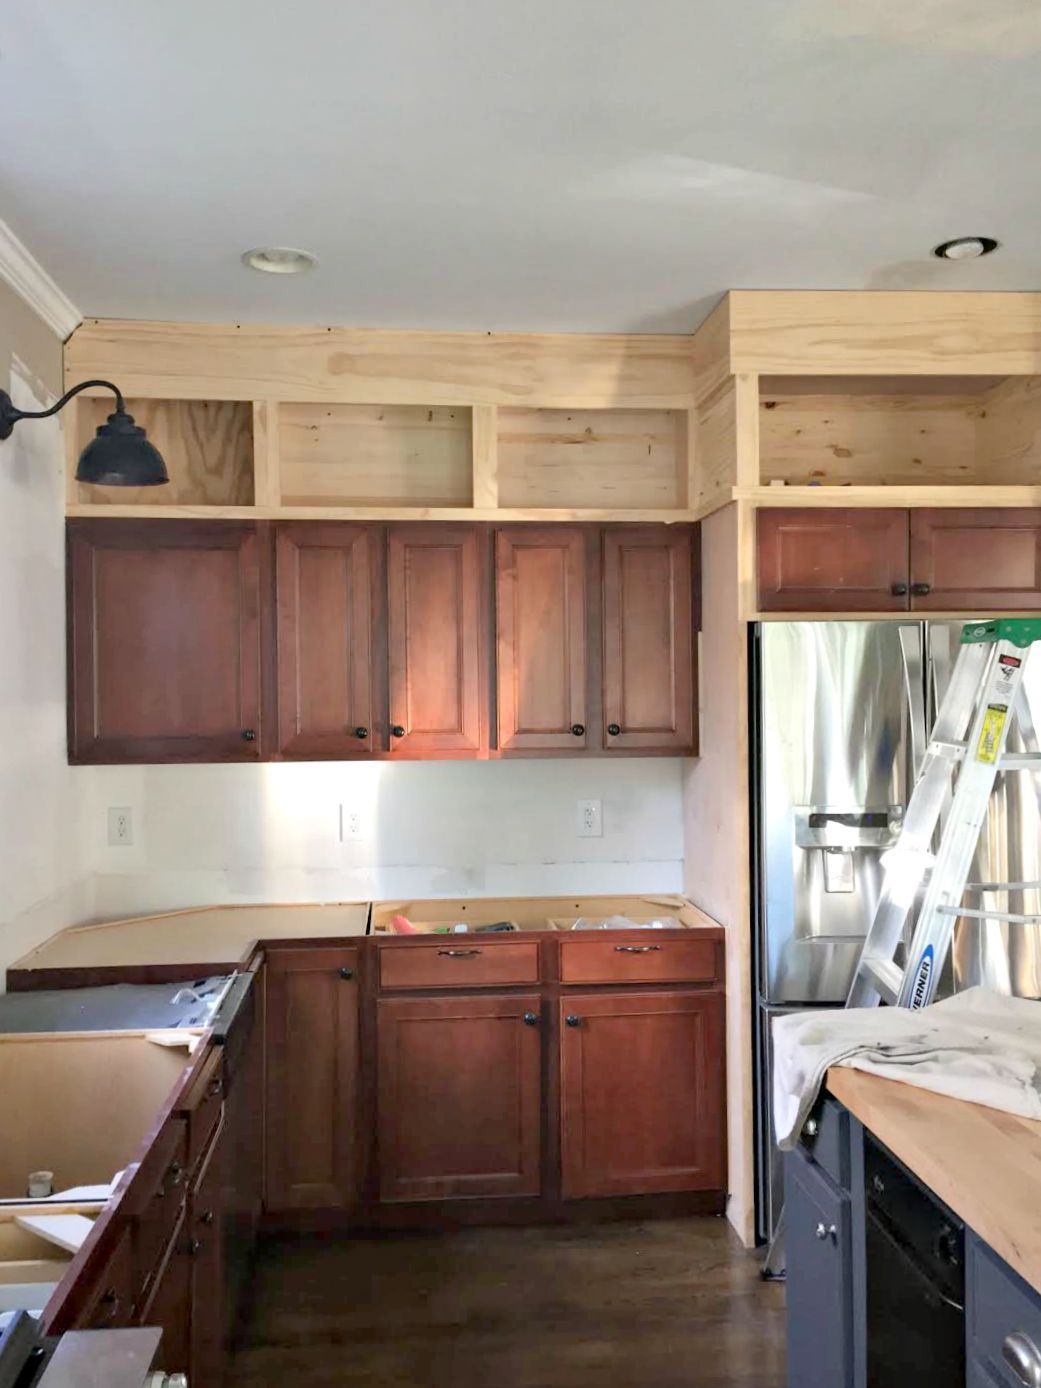 Kitchen Cabinets To The Ceiling New Building Cabinets Up To The Ceiling  Building Kitchen Cabinets . Design Inspiration